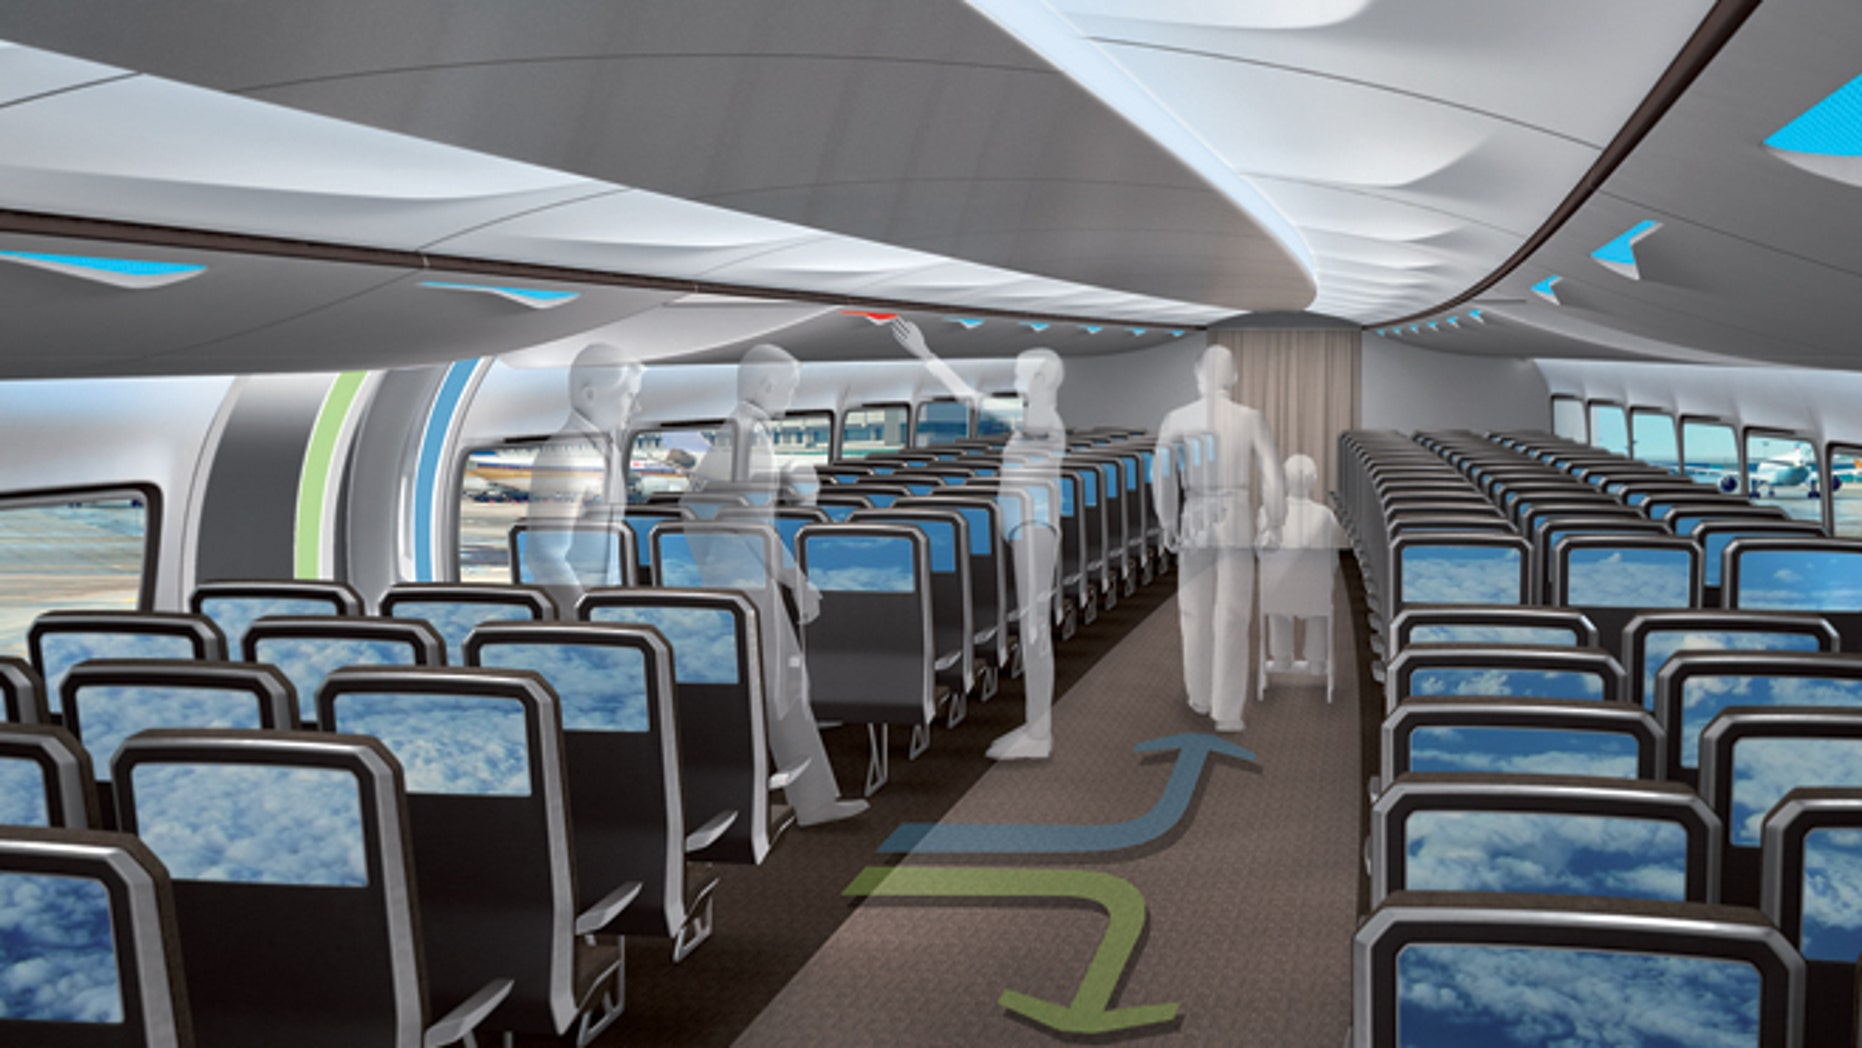 Boarding from the center will cut the clutter as you enter the plane cabin.